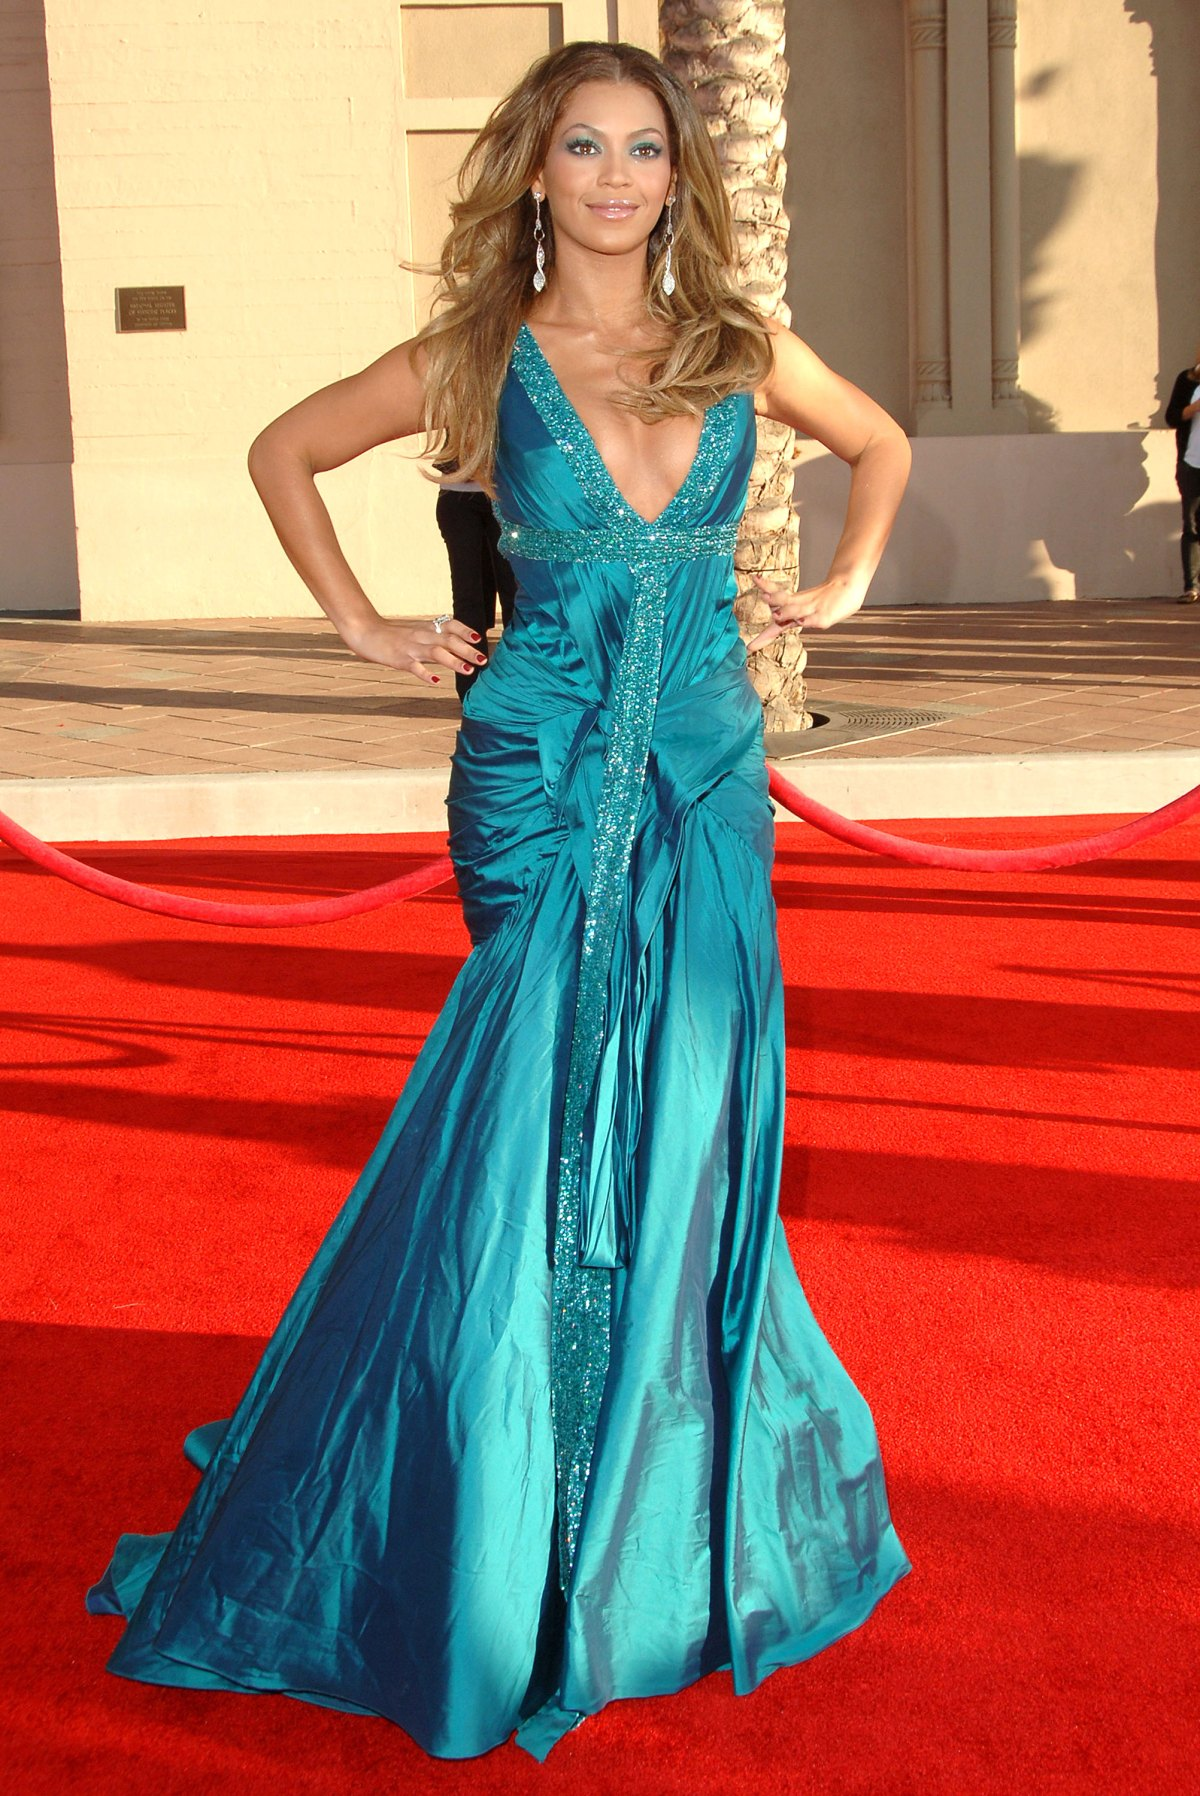 American Music Awards Fashion: All-Time Best Red Carpet Looks